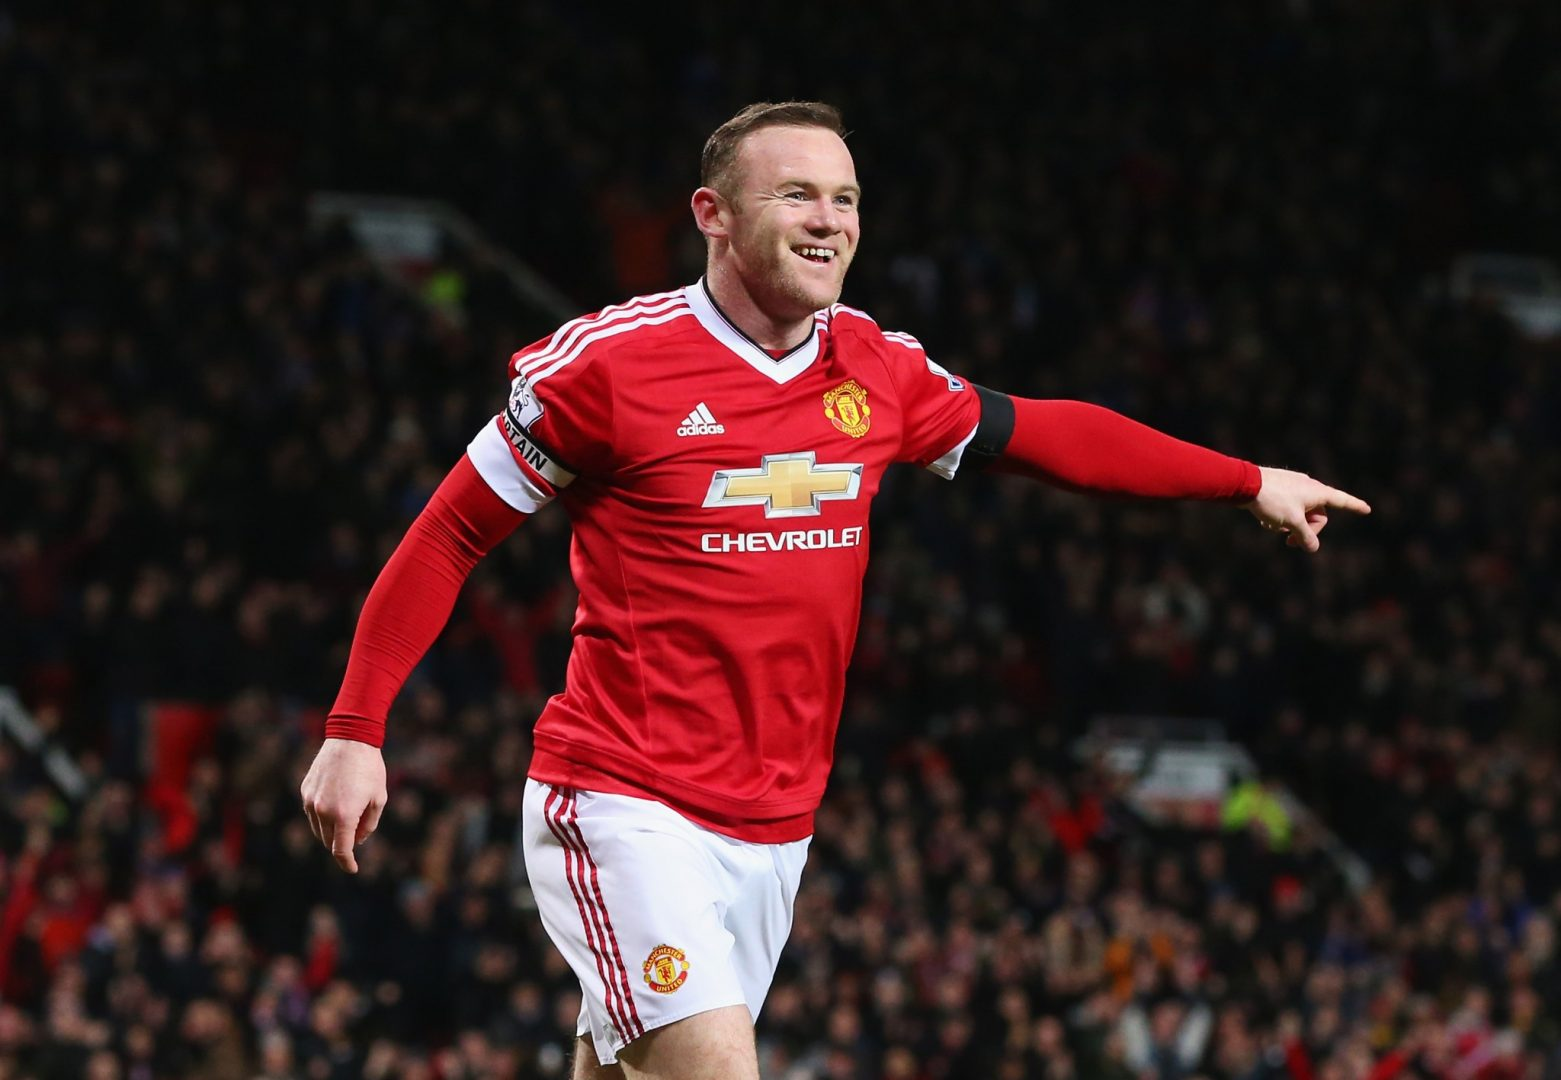 Wayne Rooney celebrates his latest goal for Manchester United.